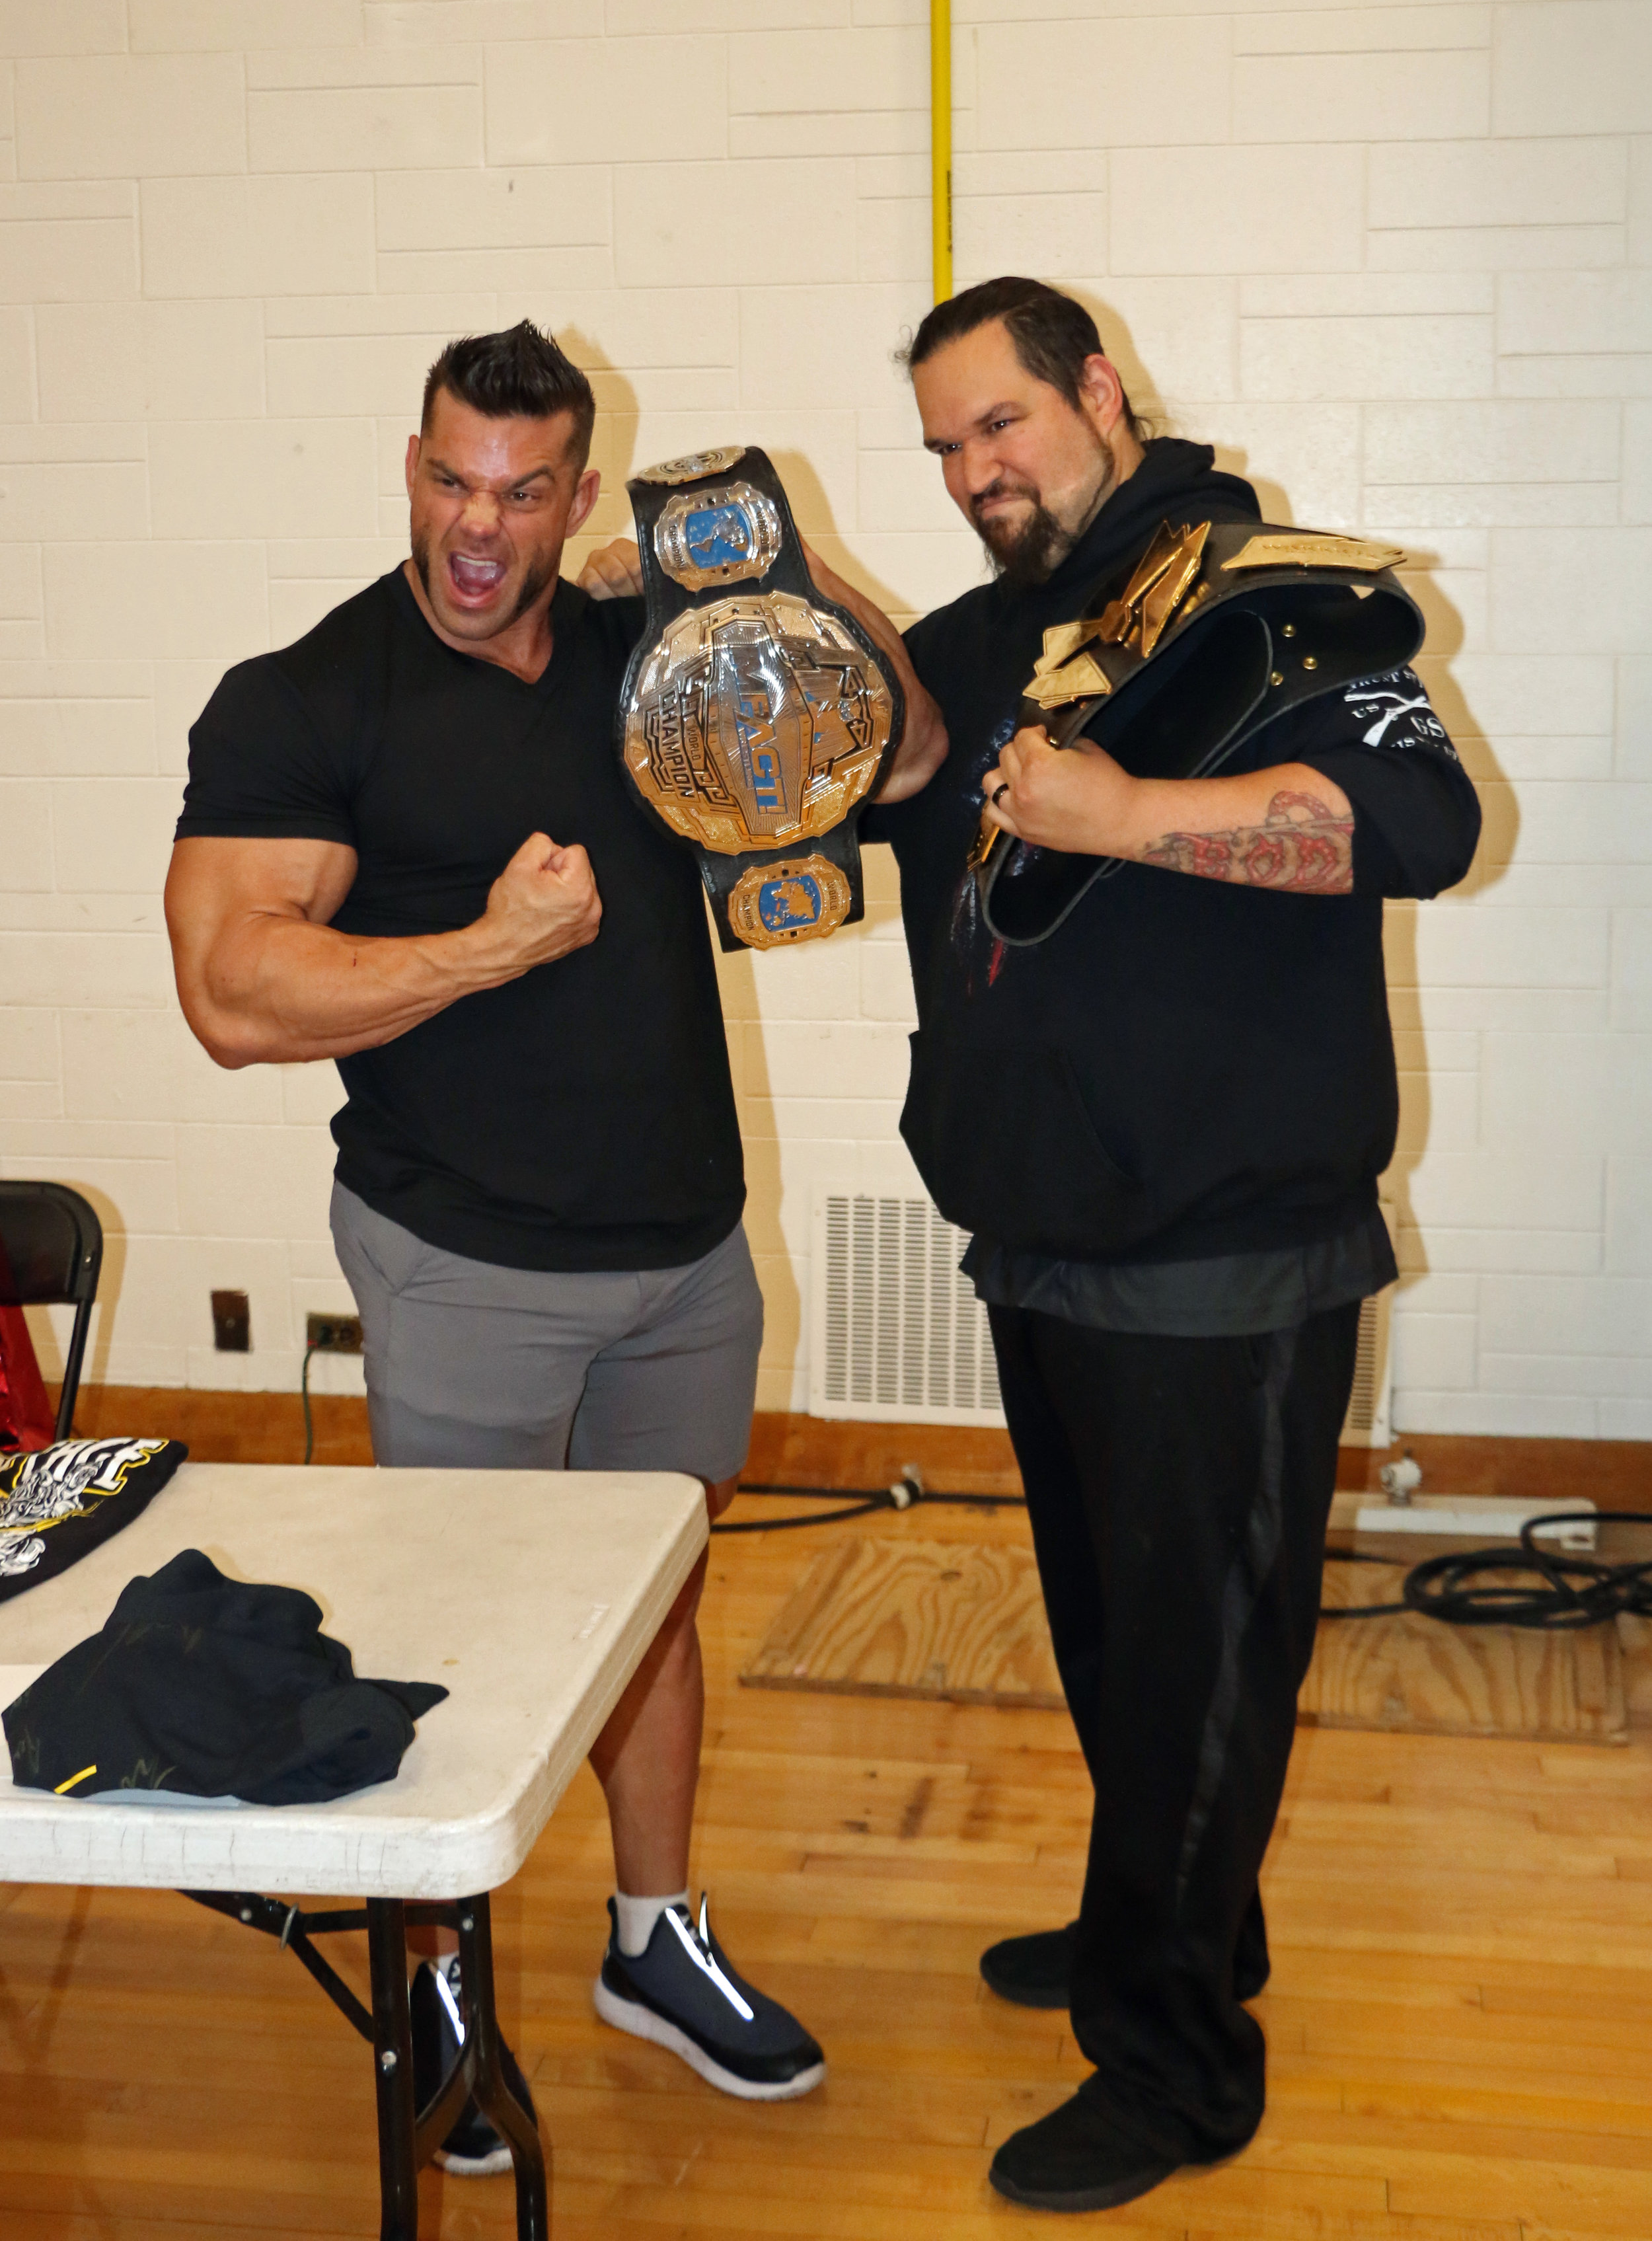 Warrior Wrestling and IMPACT Wrestling Champion Brian Cage poses with a fan during the Warrior Wrestling 5 VIP Fan Fest.